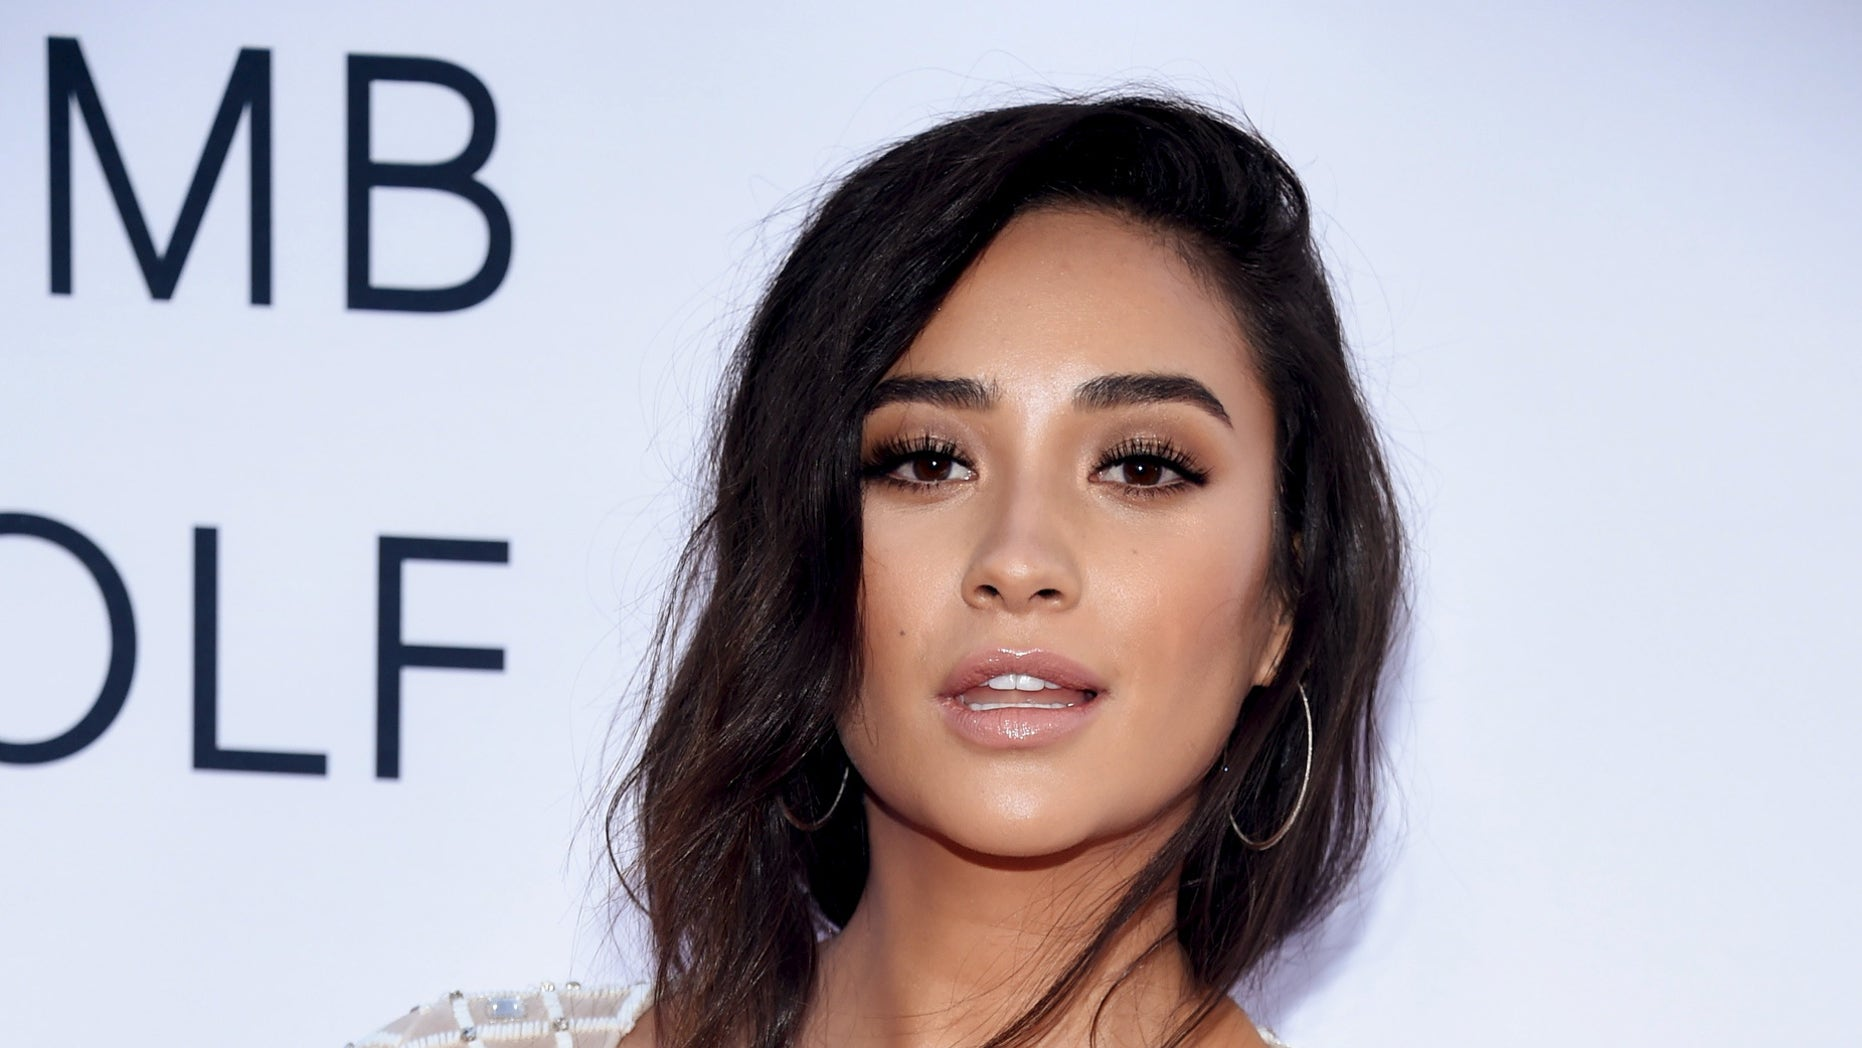 """Cast member Shay Mitchell attends the premiere of """"Mother's Day"""" in Los Angeles April 13, 2016. REUTERS/Phil McCarten - RTX29VHR"""